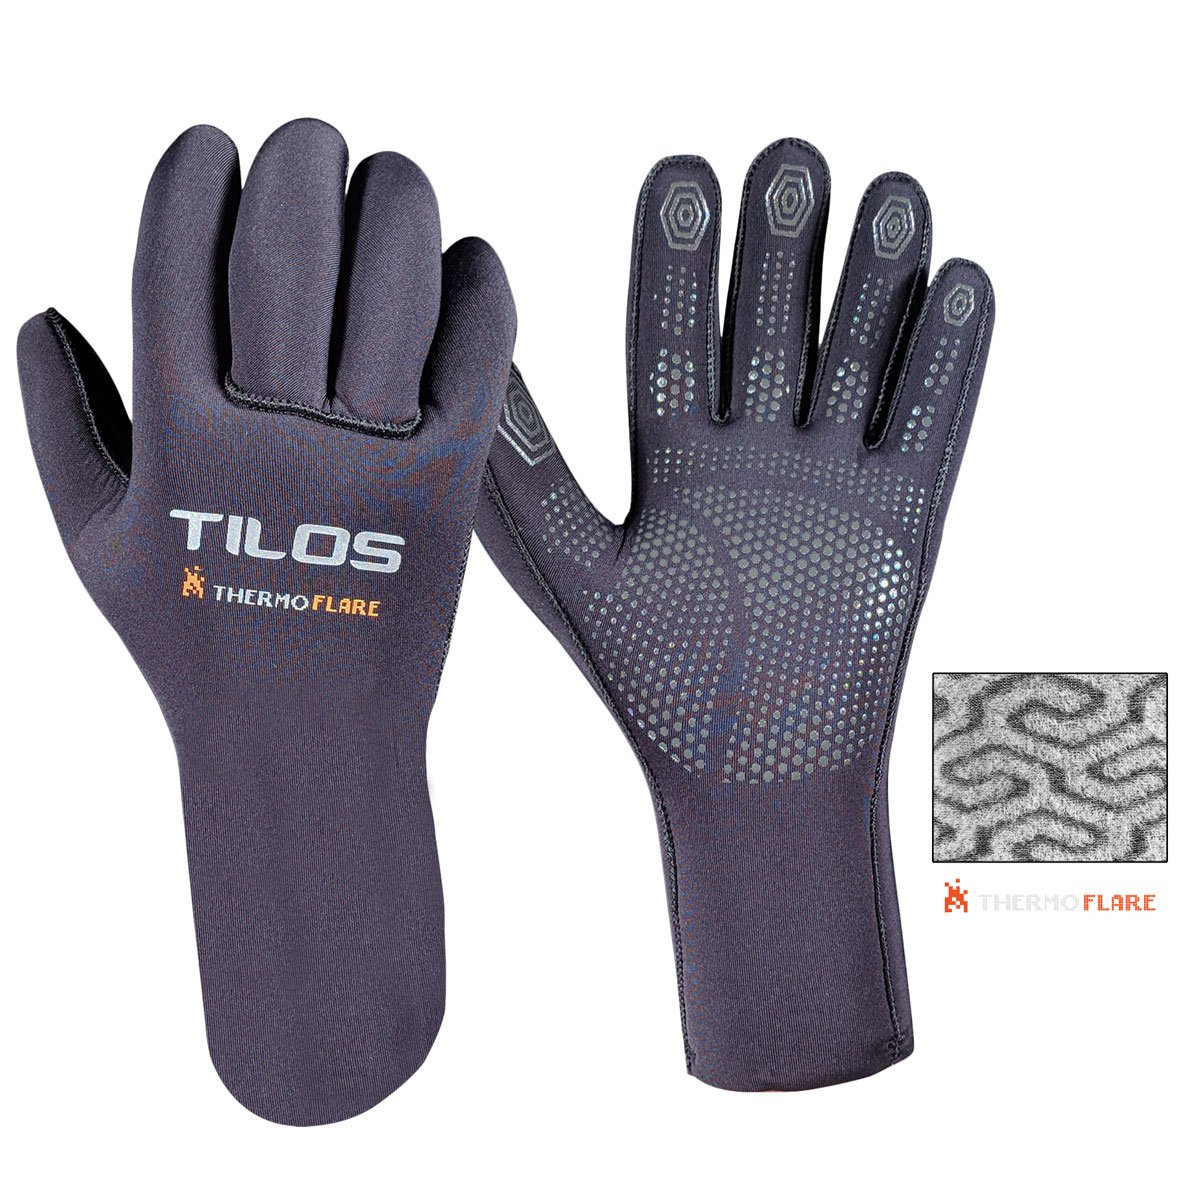 3MM THERMOFLARE SUPERSTRETCH GLOVES Tilos